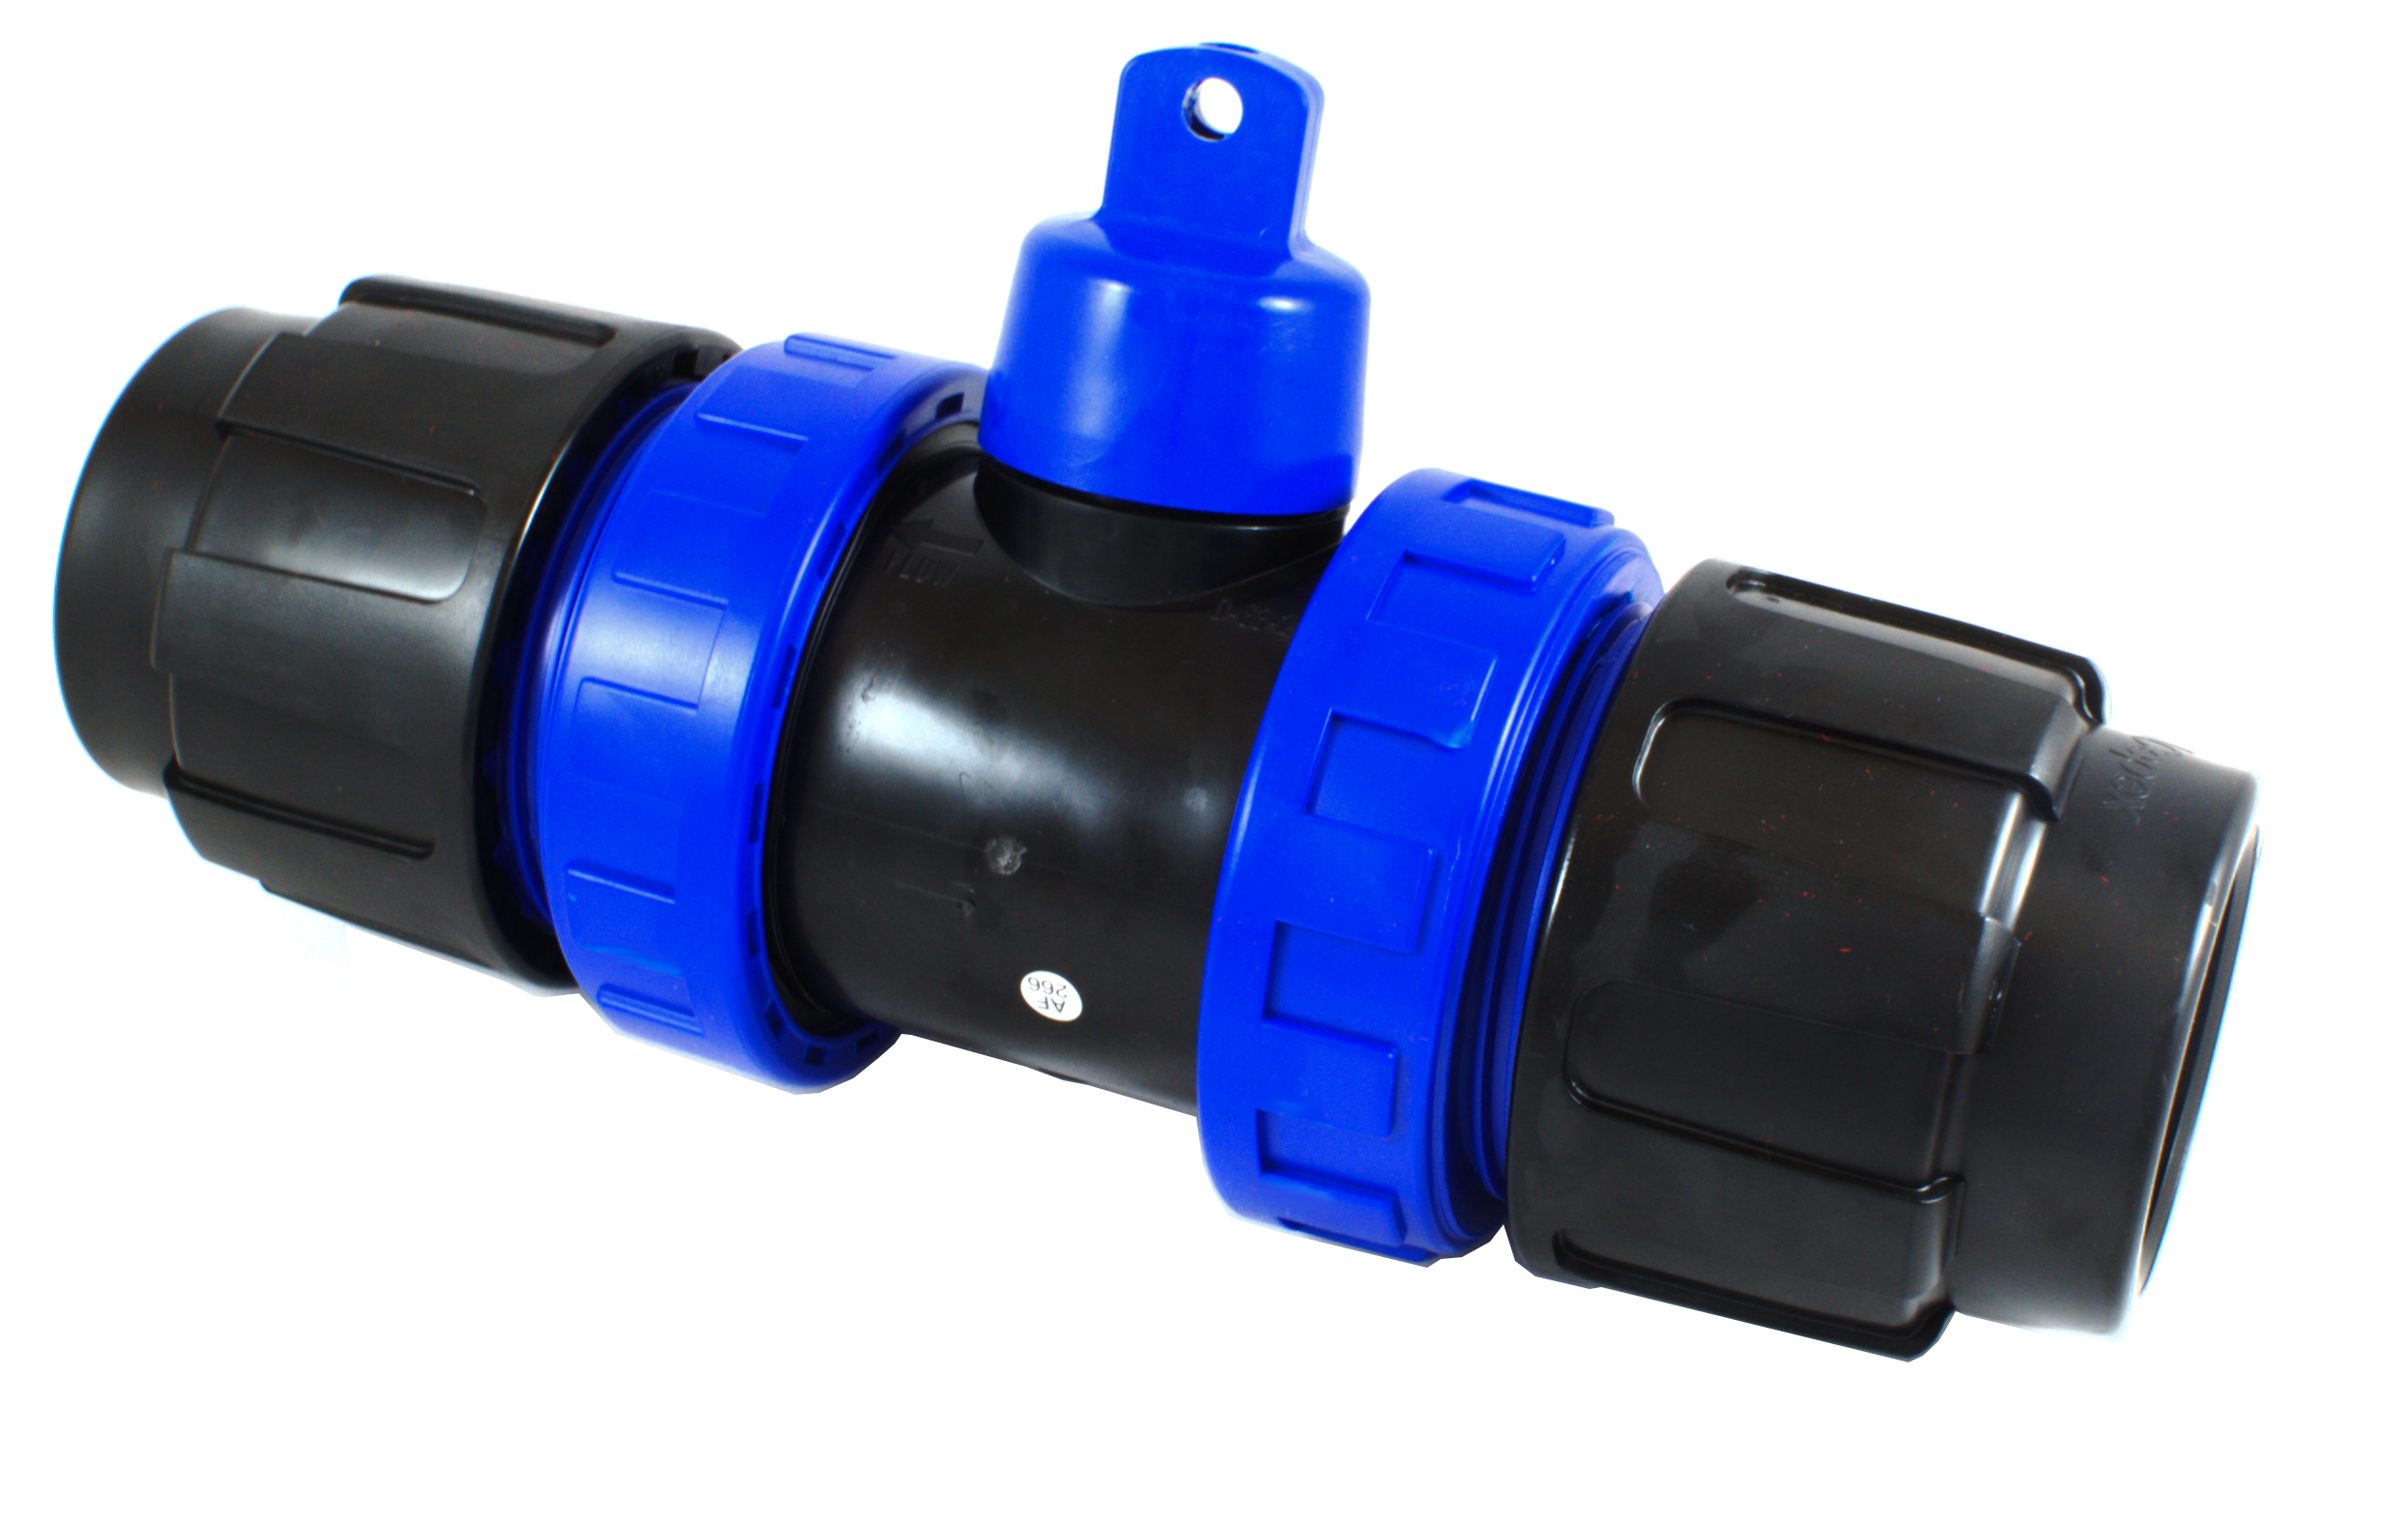 Curb Stops rated to 200 PSI @ 73ºF WORKING PRESSURE. Available in IPS, CTS & fipt sizes.